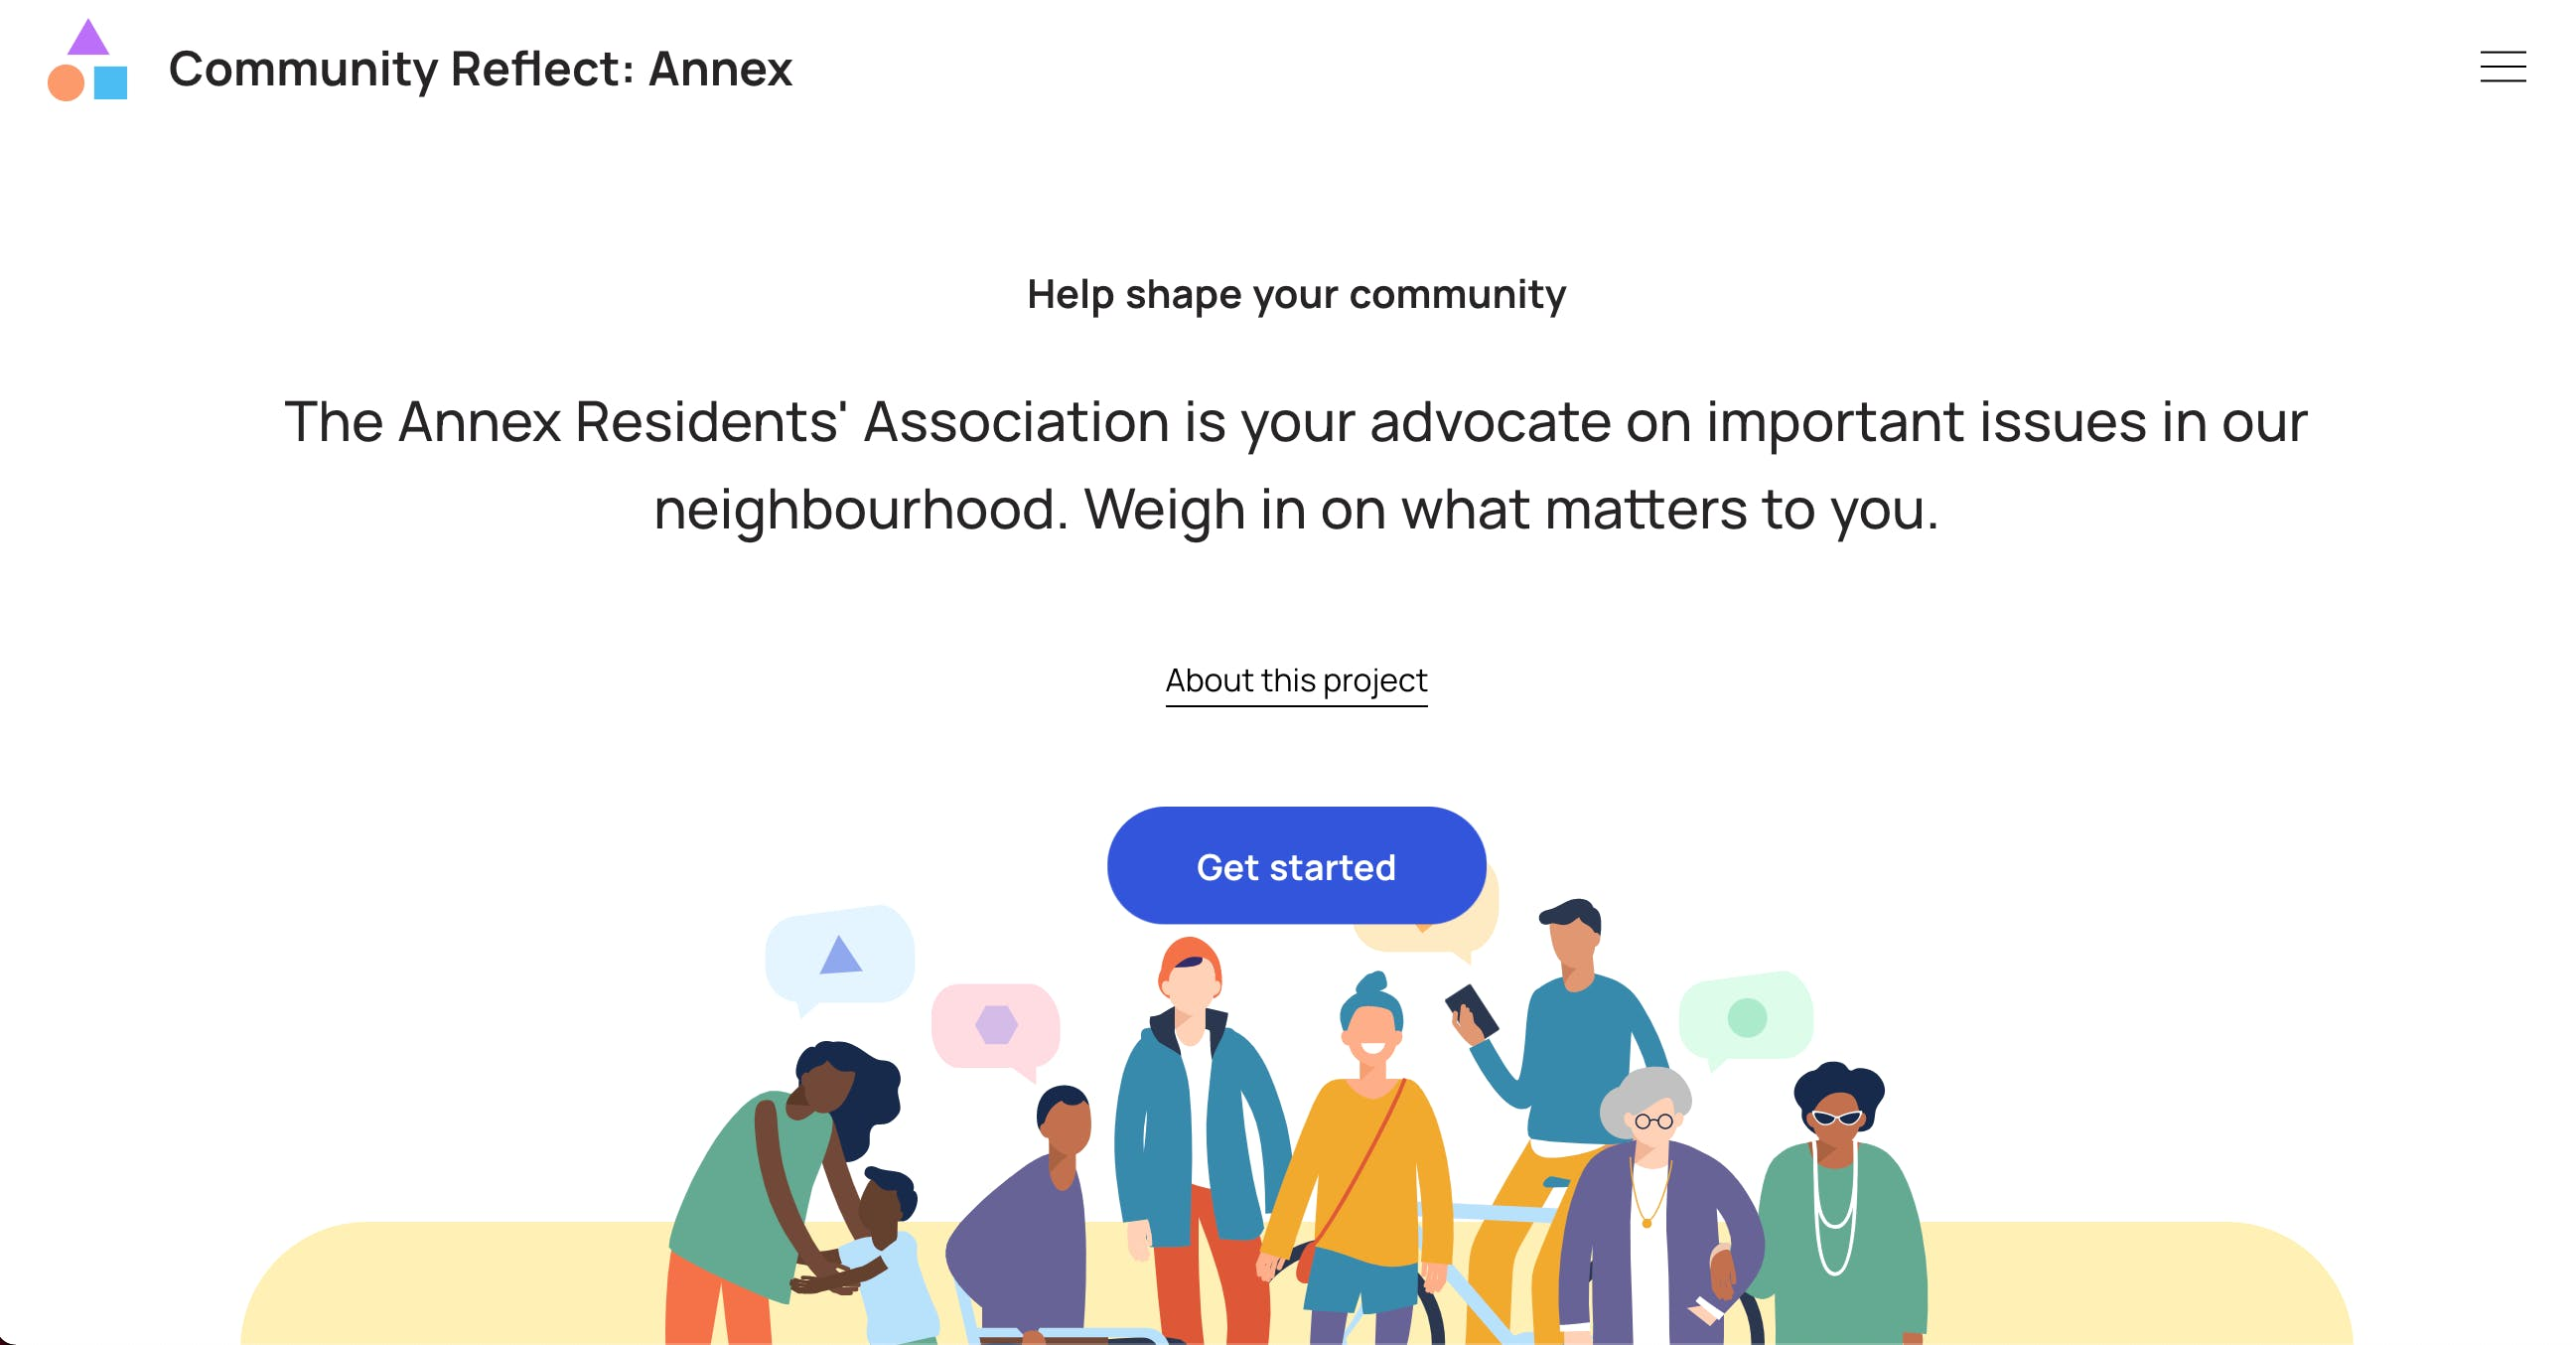 """Homepage of Community Reflect tool. Reads: """"Community Reflect: Annex. Help shape your community. The Annex Resident's Association is your advocate on important issues in our neighbourhood. Weigh in on what matters to you."""""""